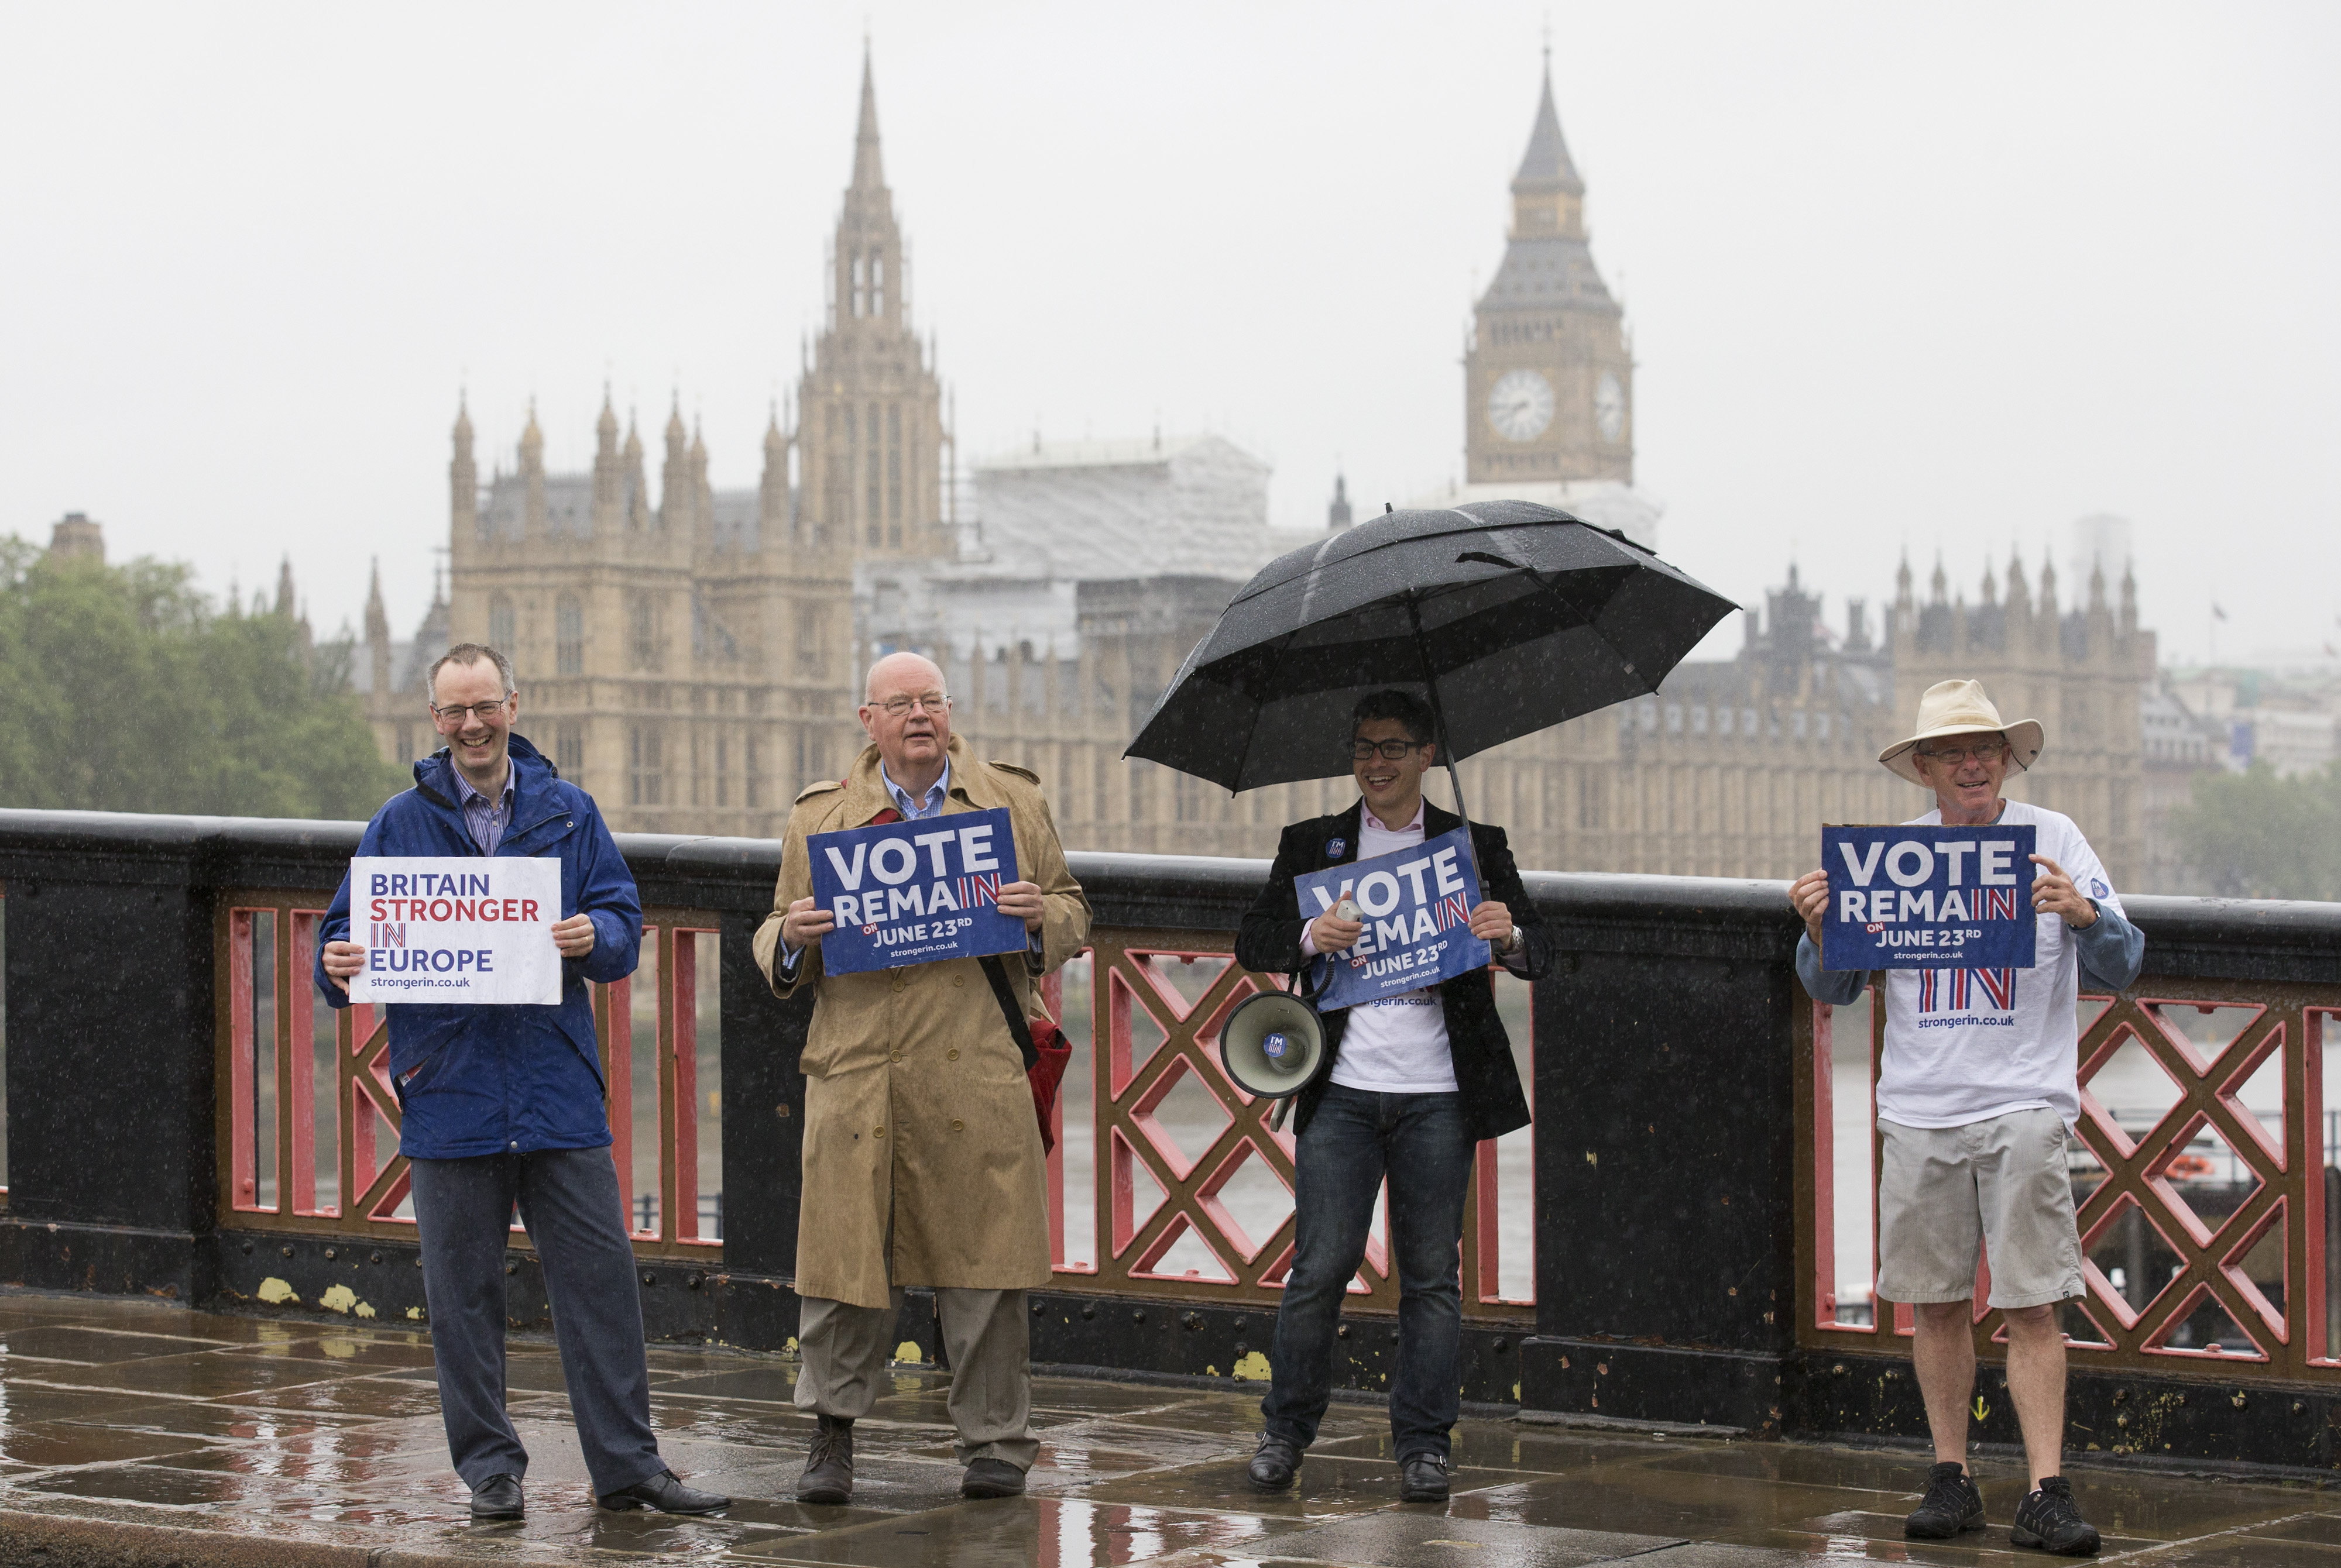 Campaigners hold placards for 'Britain Stronger in Europe', the official 'Remain' campaign group seeking to avoid a Brexit, ahead of the forthcoming EU referendum, in London on June 20, 2016.